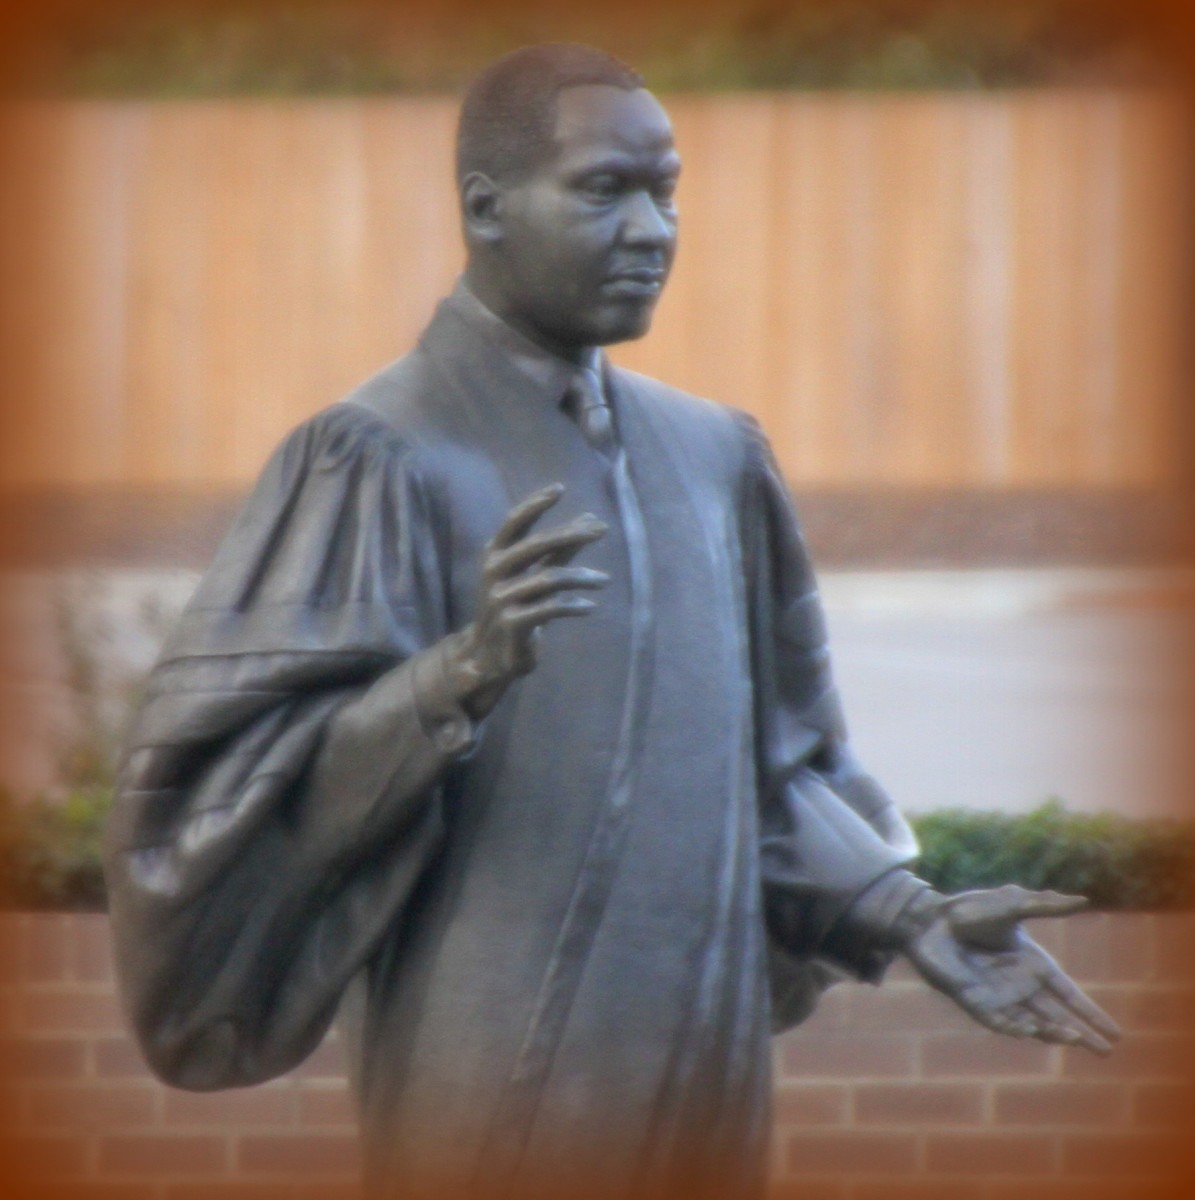 This statue graces the Martin Luther King Jr. Memorial Park in Raleigh, N